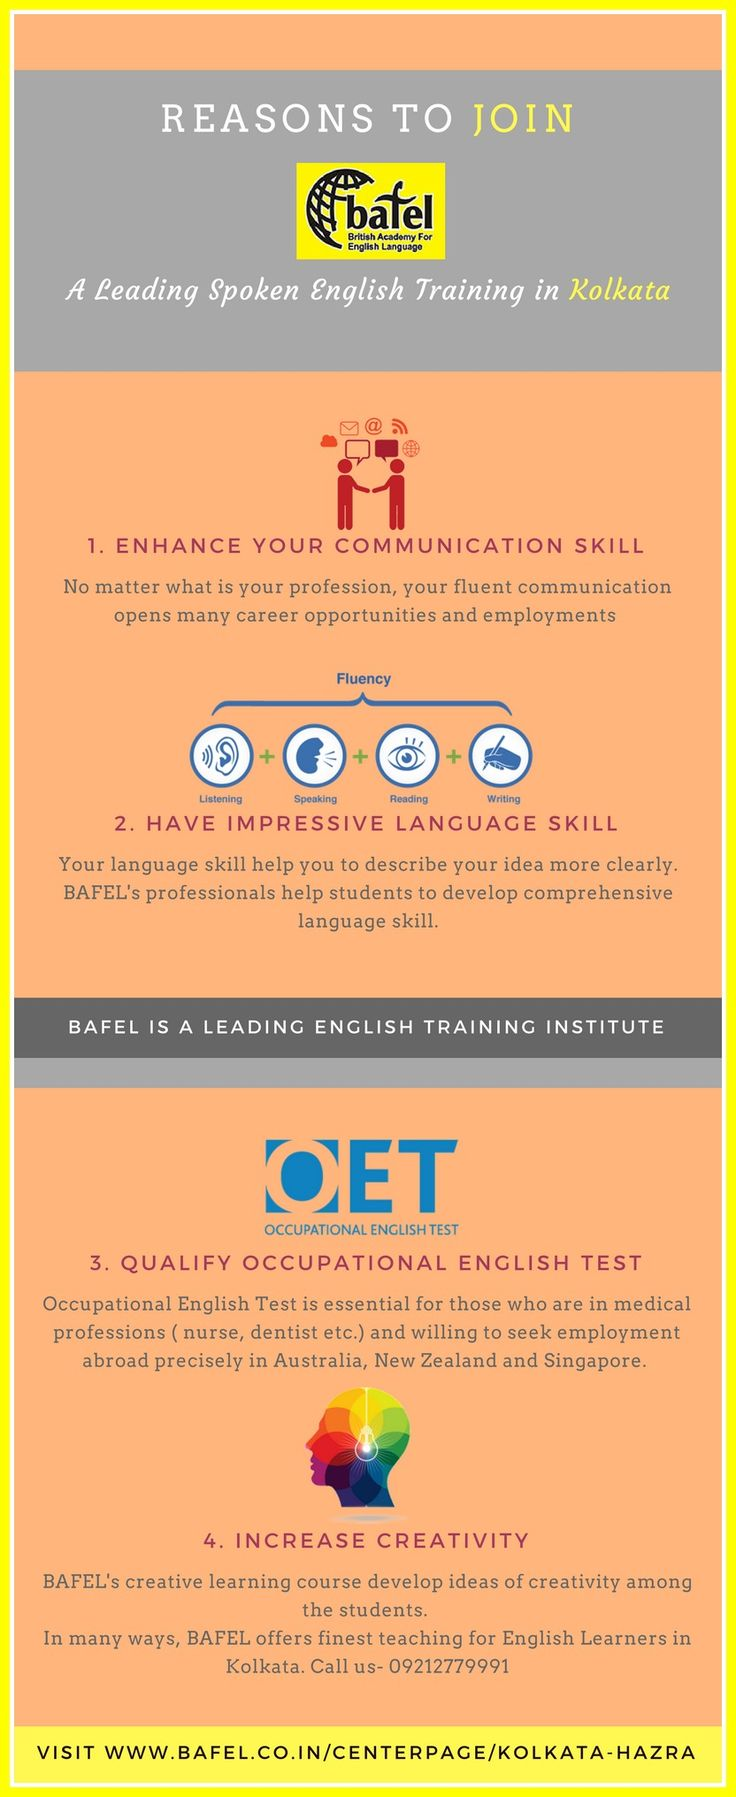 Join BAFEL at Kolkata and enhance your English communication skills. Be the part of the leading spoken English Training Institute in Kolkata.